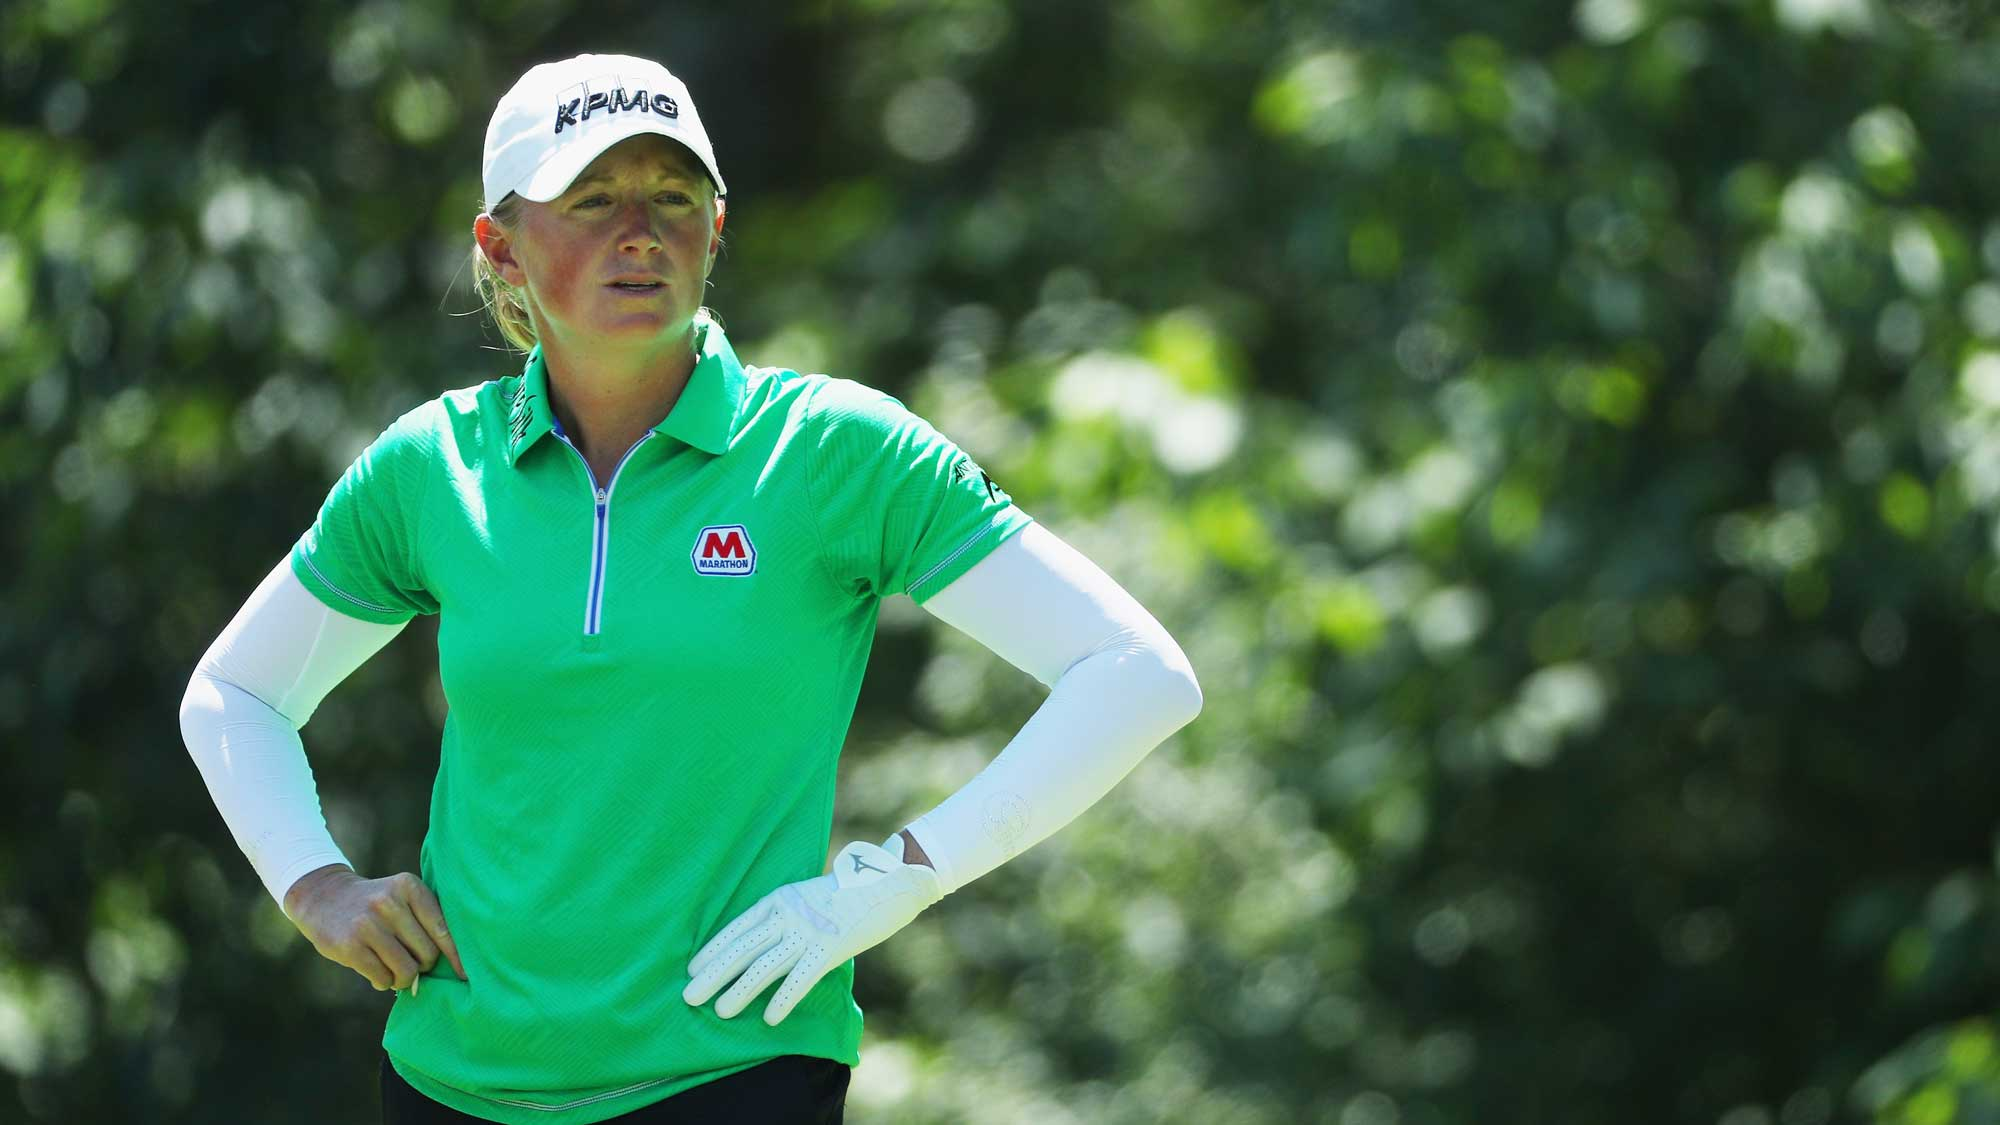 Stacy Lewis waits in a fairway during the final round of the 2017 KPMG Women's PGA Championship